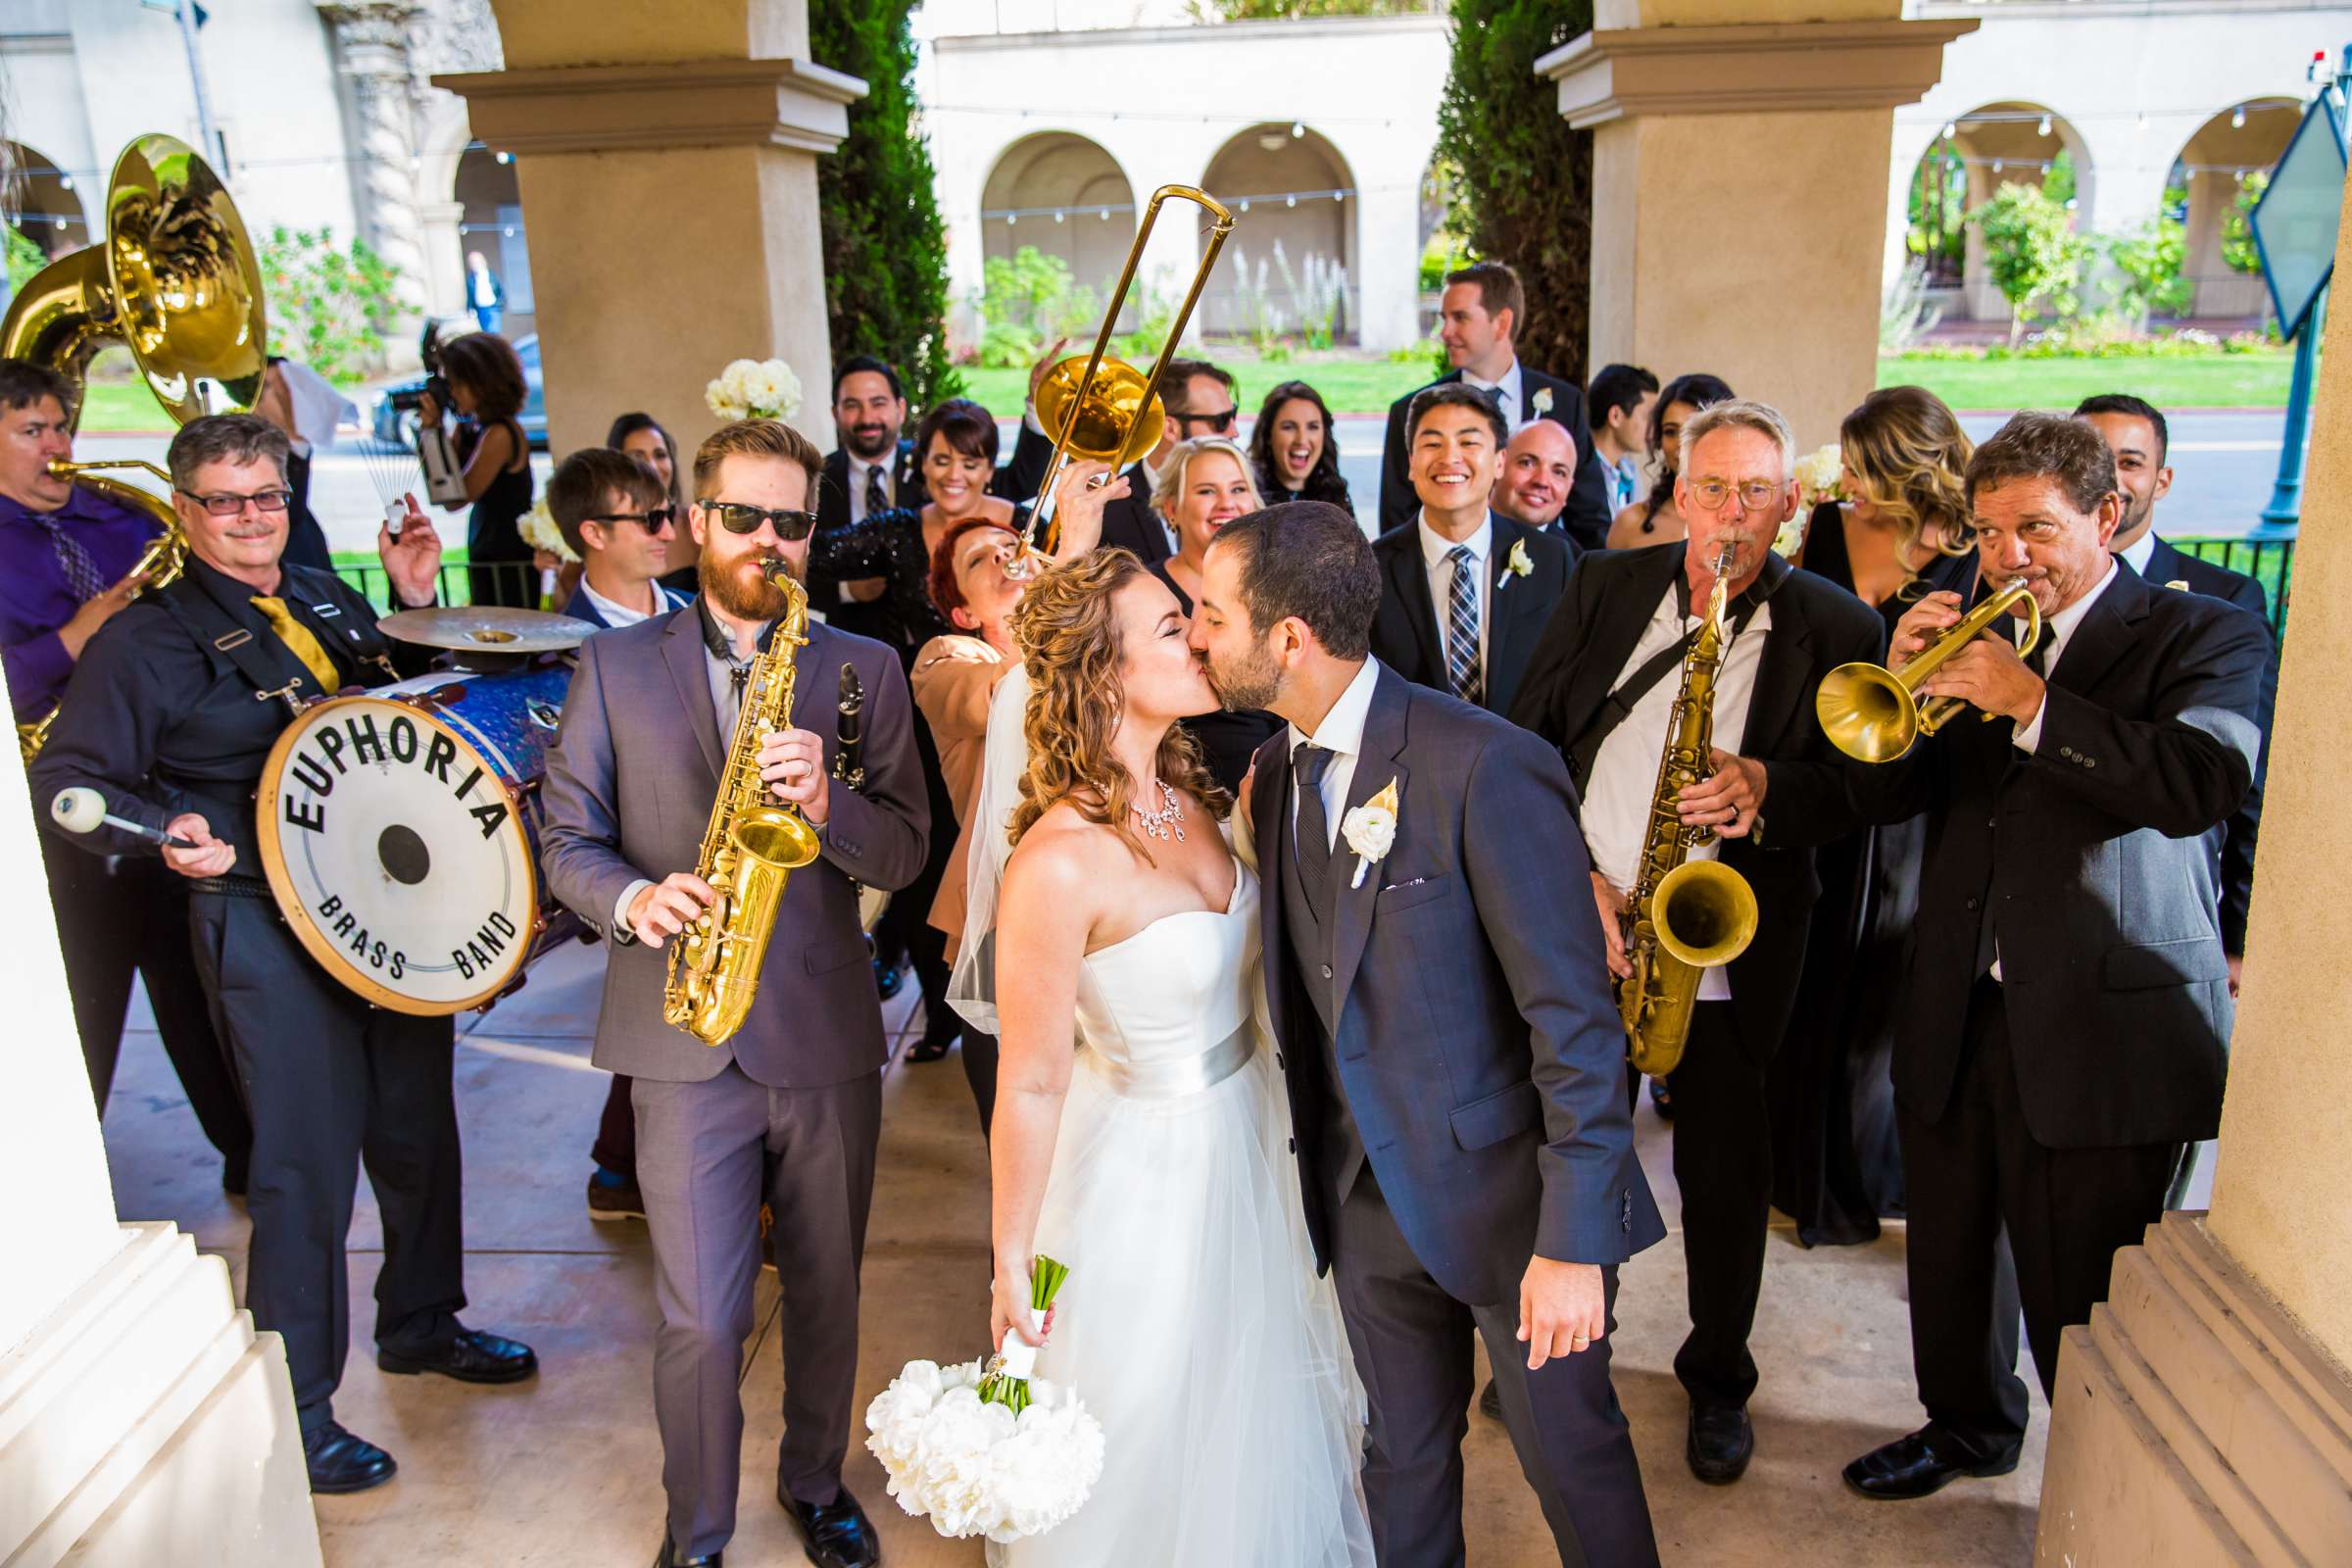 Musicians at San Diego Museum of Art Wedding coordinated by First Comes Love Weddings & Events, Ruthie and Larry Wedding Photo #236812 by True Photography